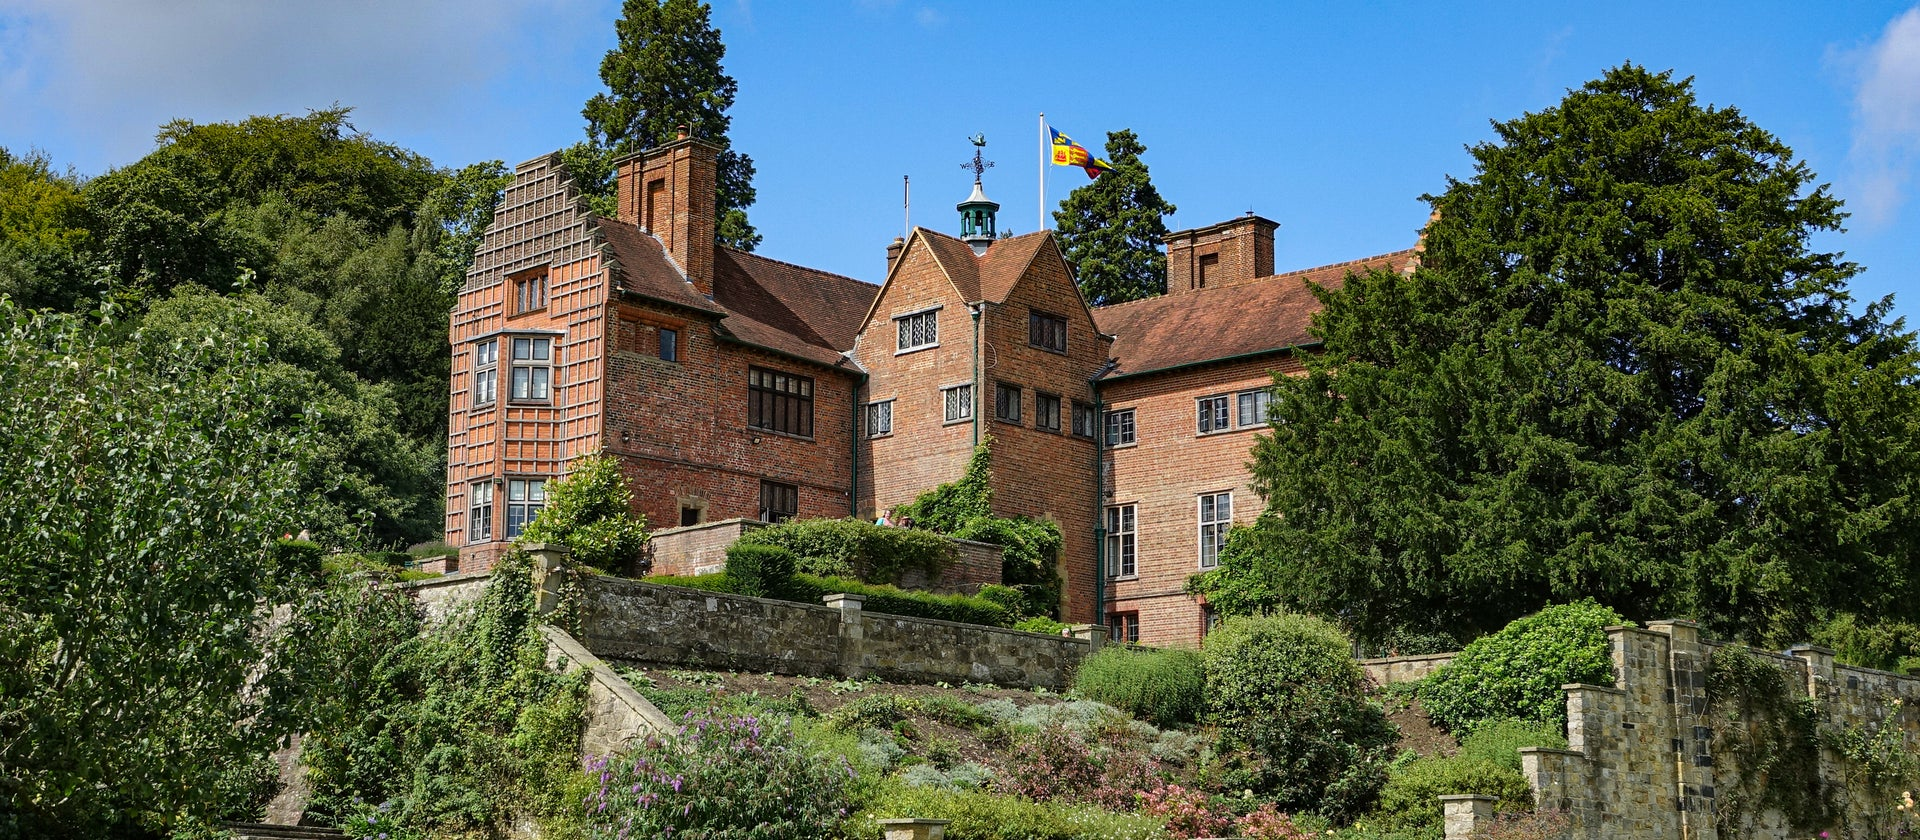 Chartwell was the family home of Winston Churchill